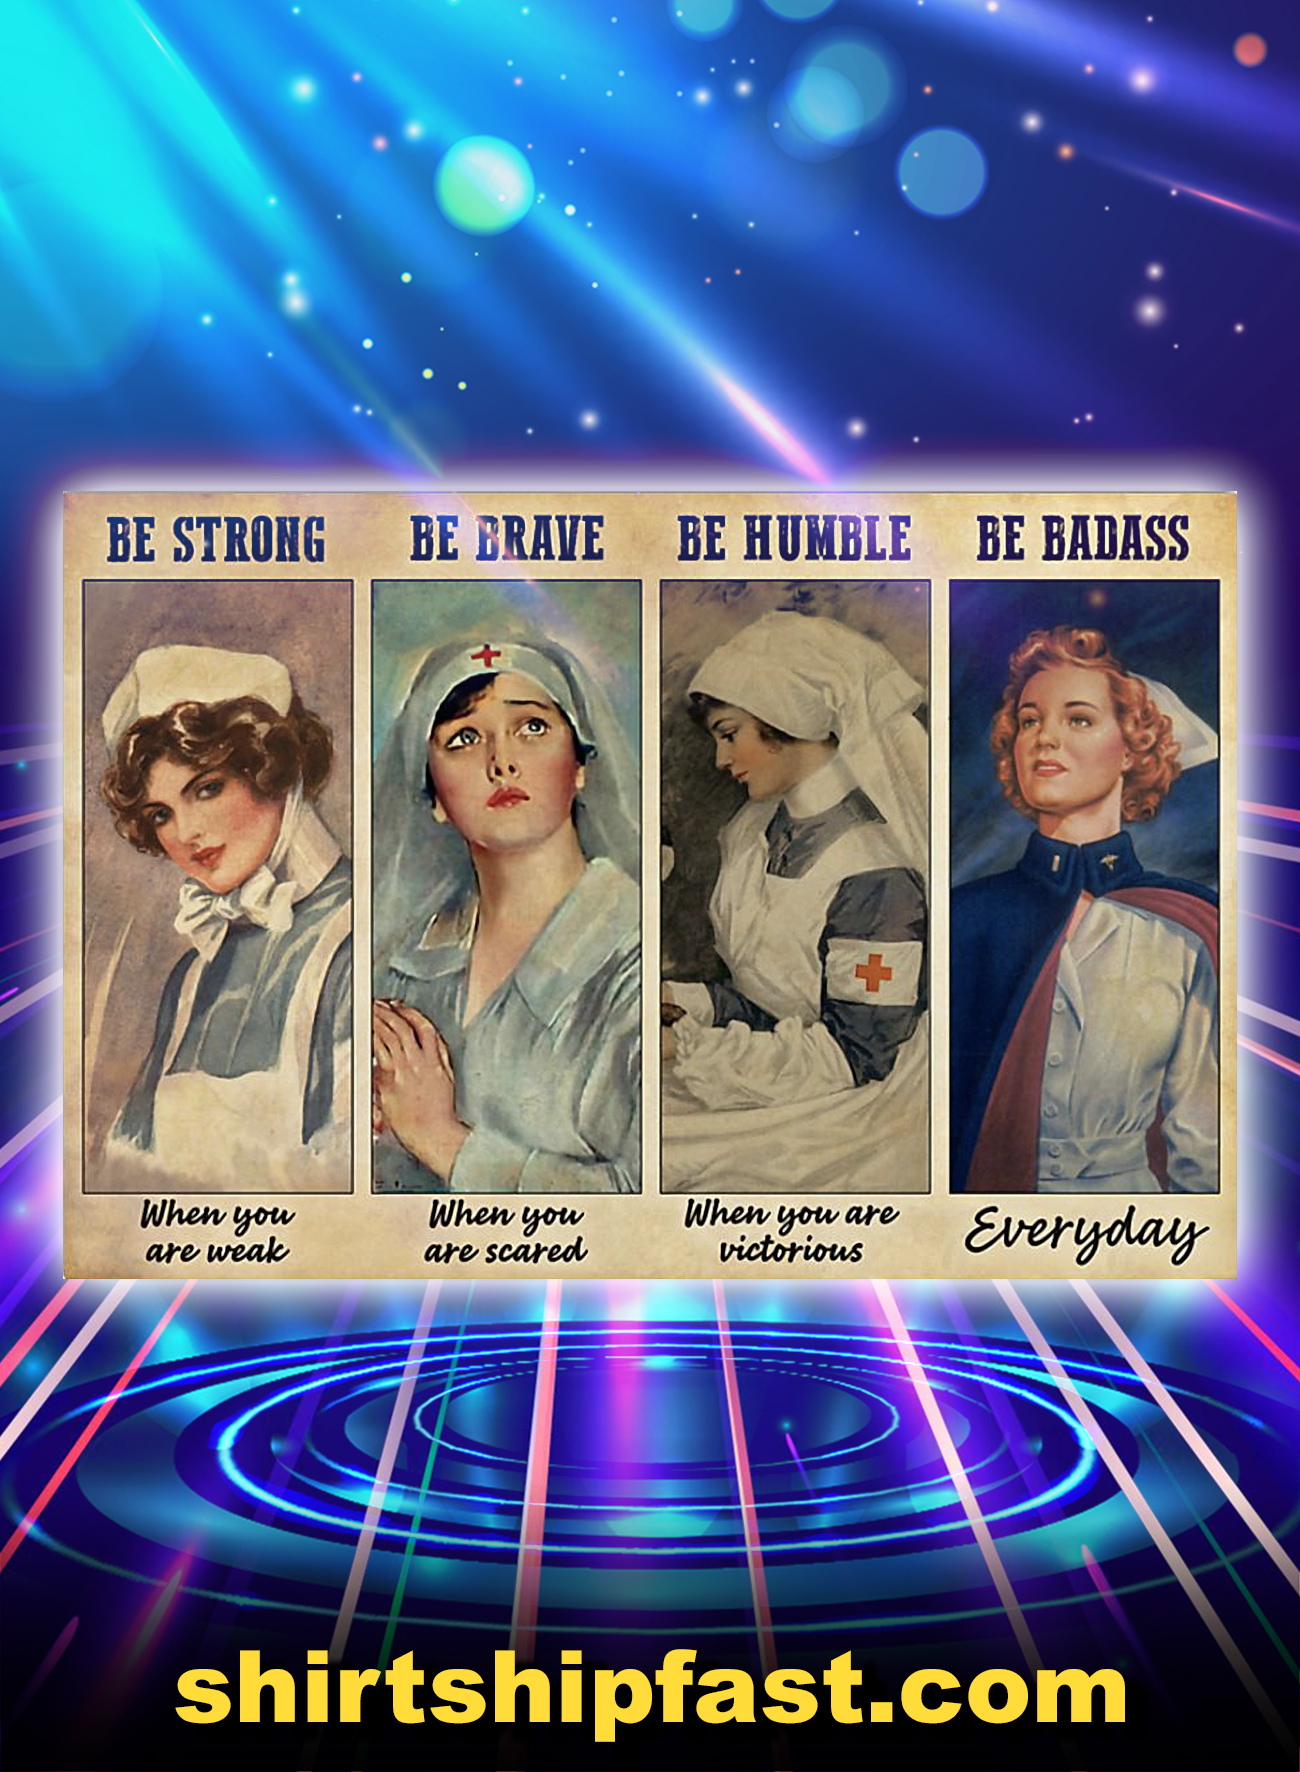 Female nurse be strong be brave be humble be badass poster